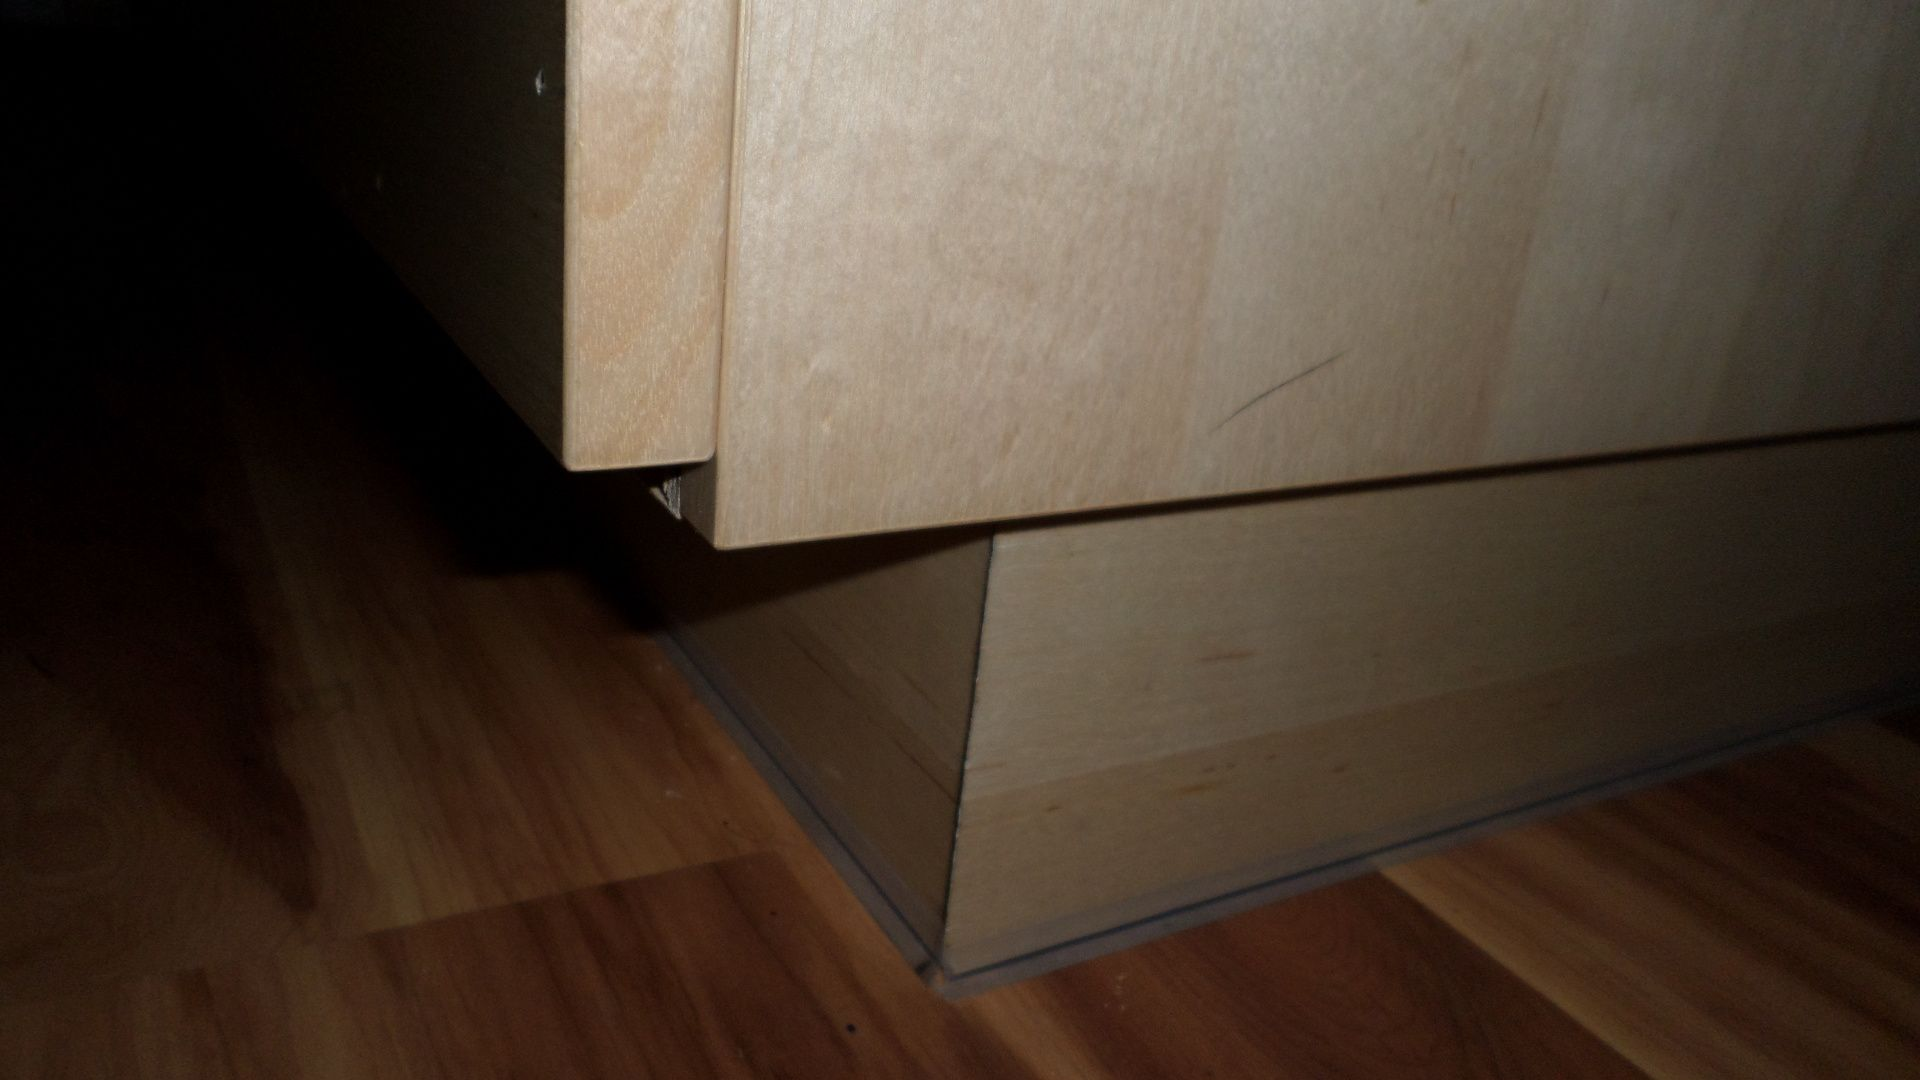 Plinth It S Just Another Name For Baseboard The Top And Bottom Of